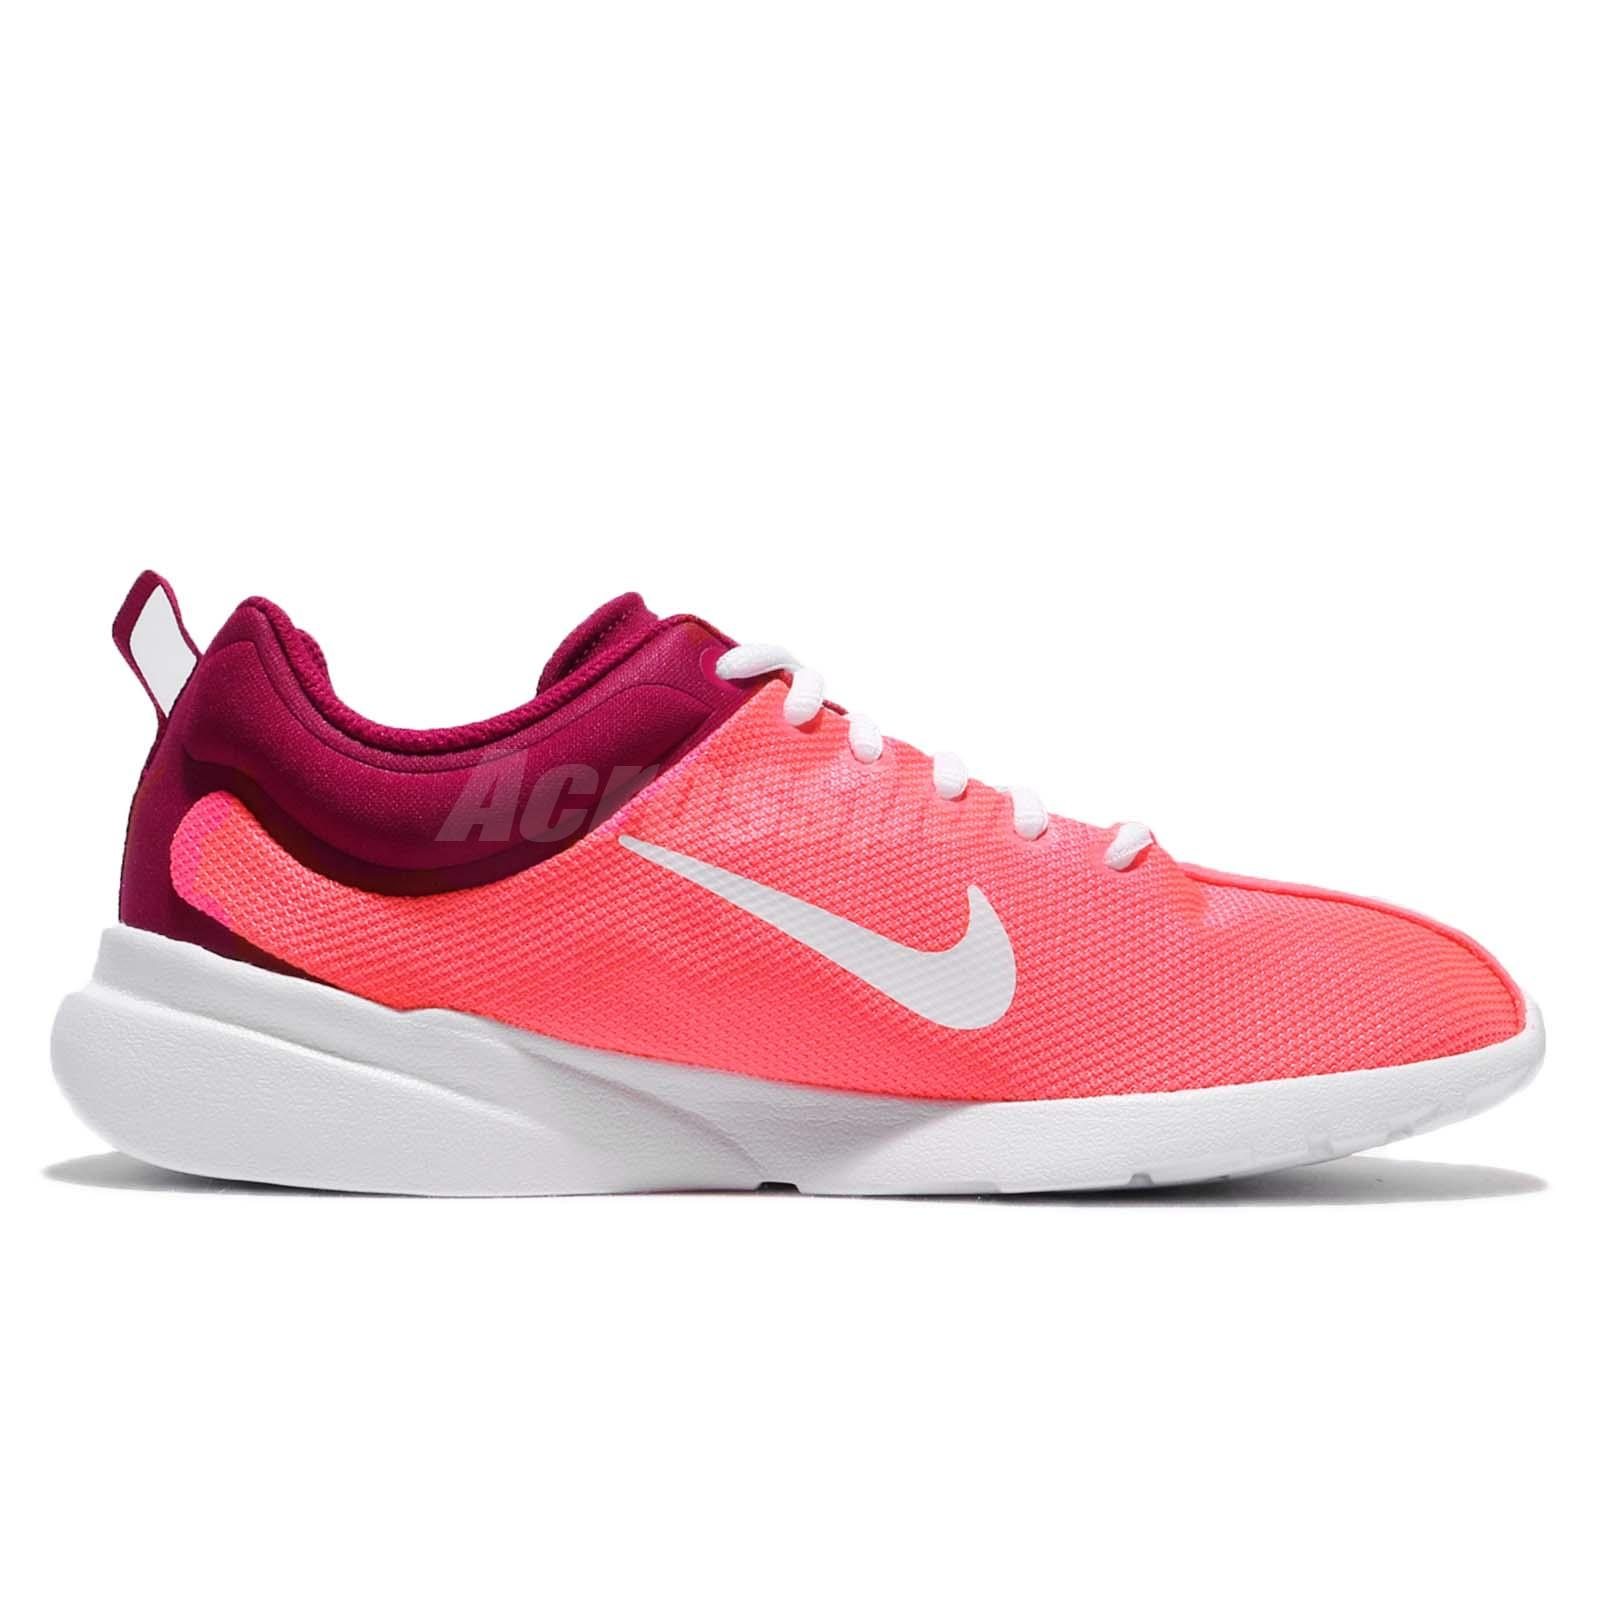 3da20095ba3ce Nike Wmns Superflyte Hot Punch Red Women Running Shoes Sneakers ...